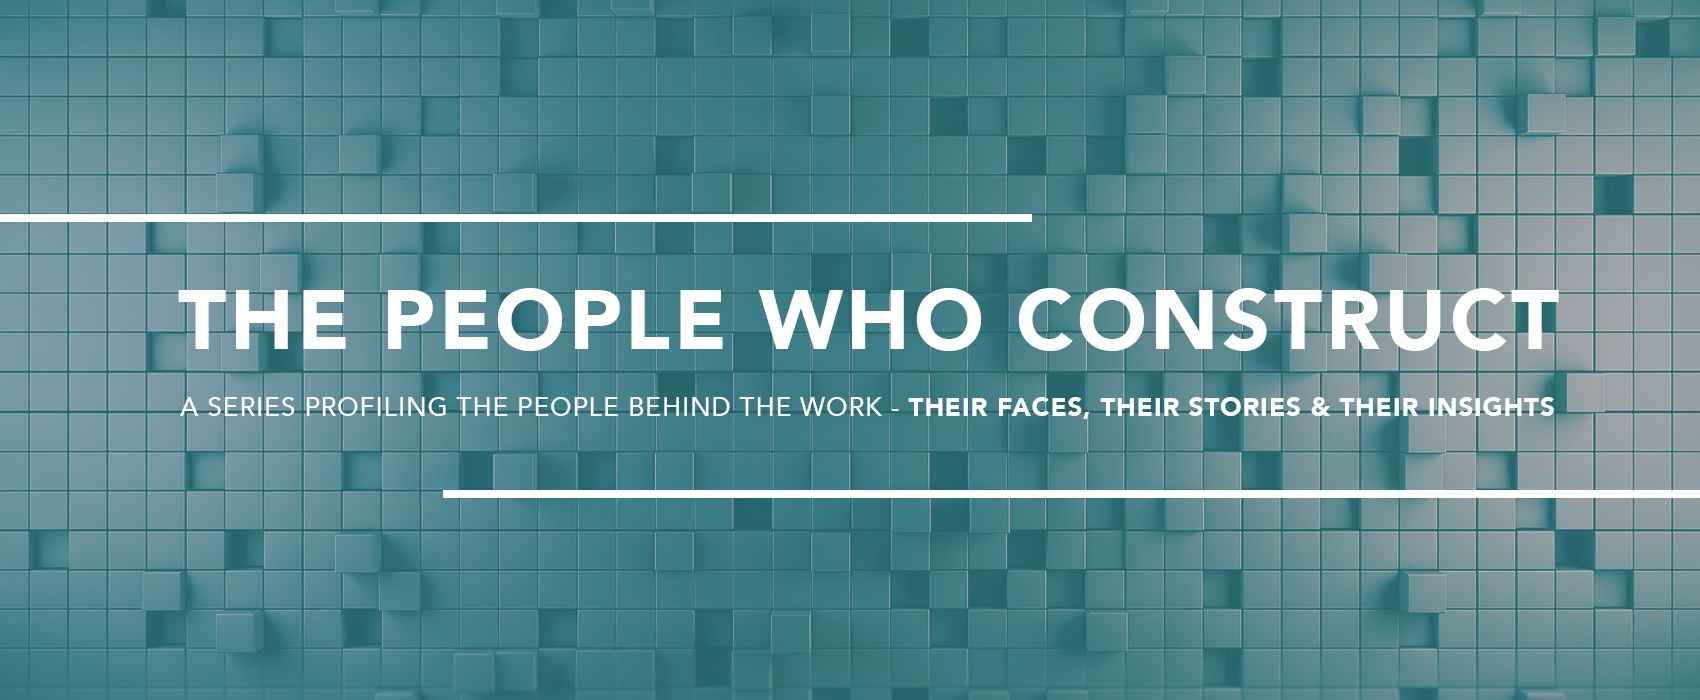 The People Who Construct